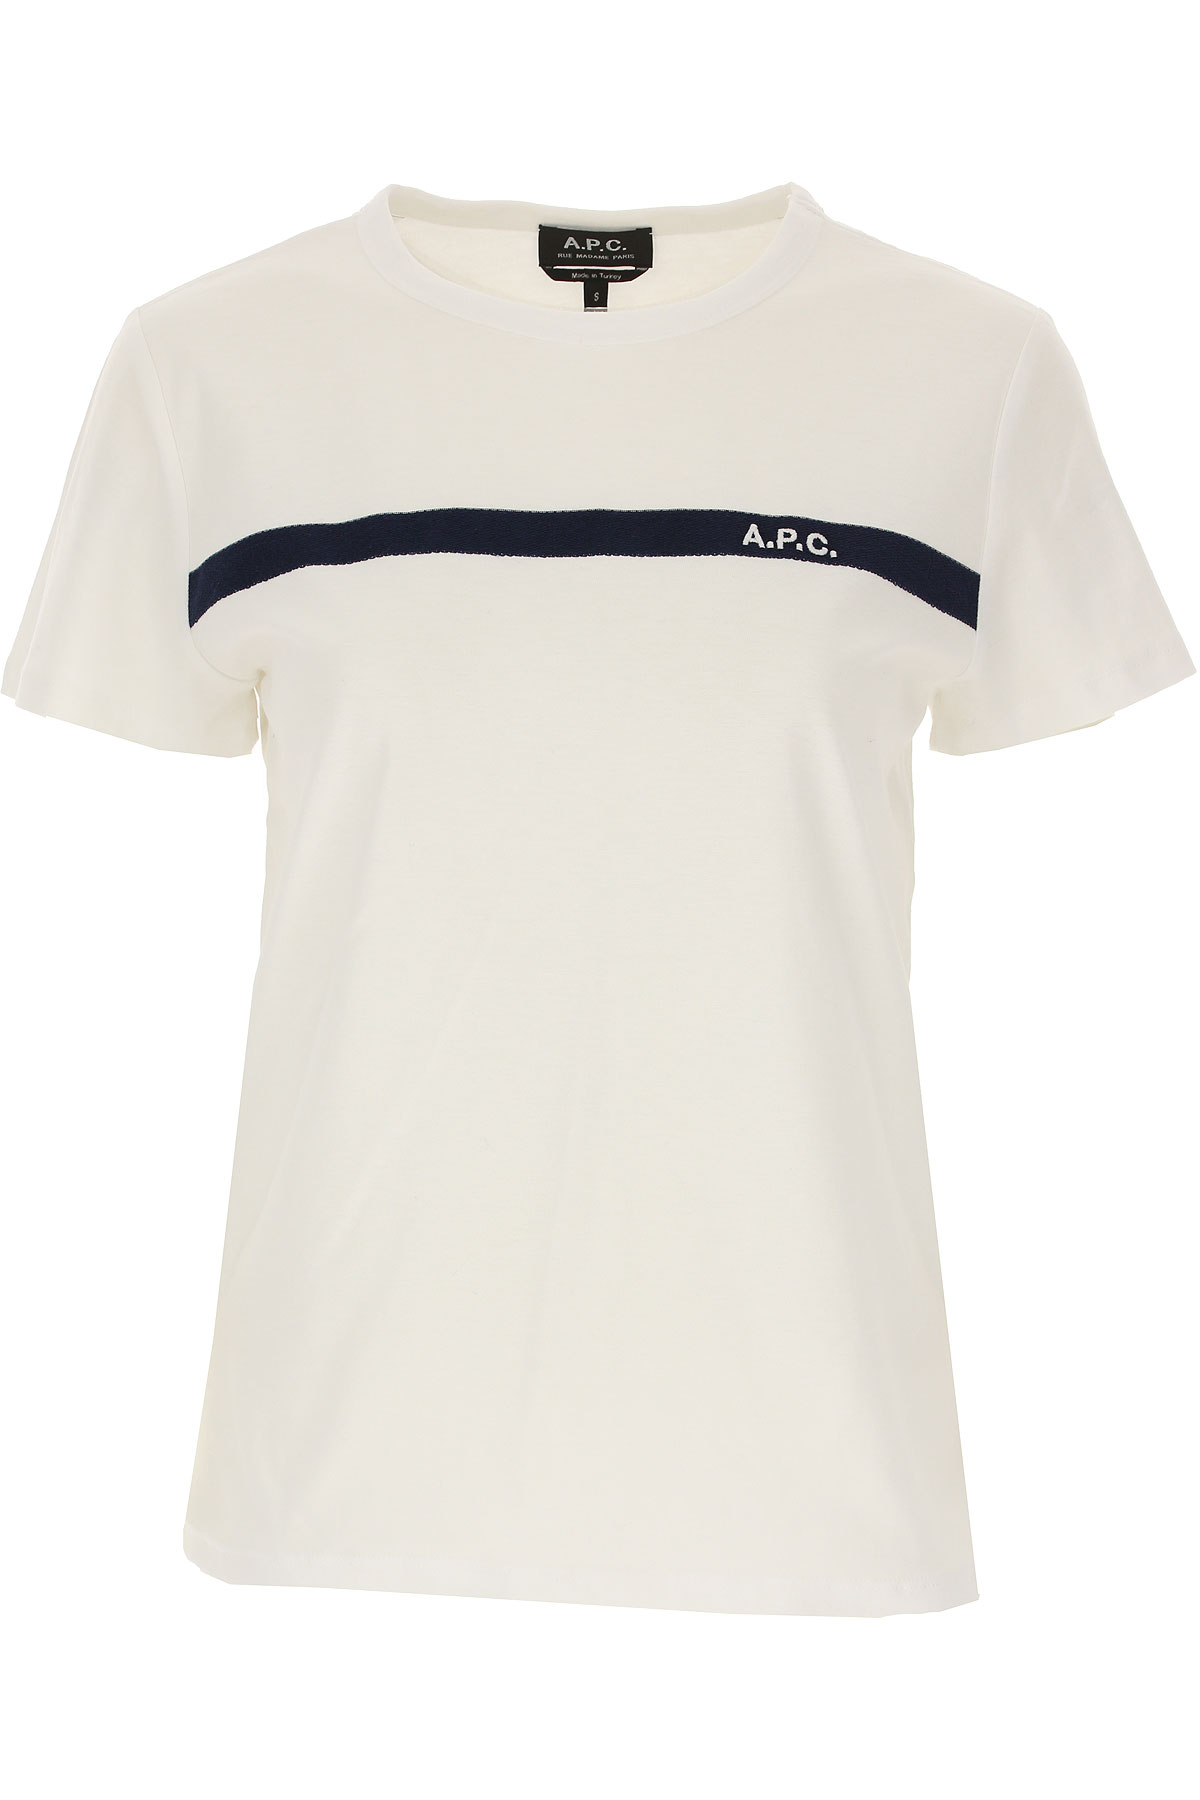 A.P.C T-Shirt for Women On Sale, White, Cotton, 2019, 6 8